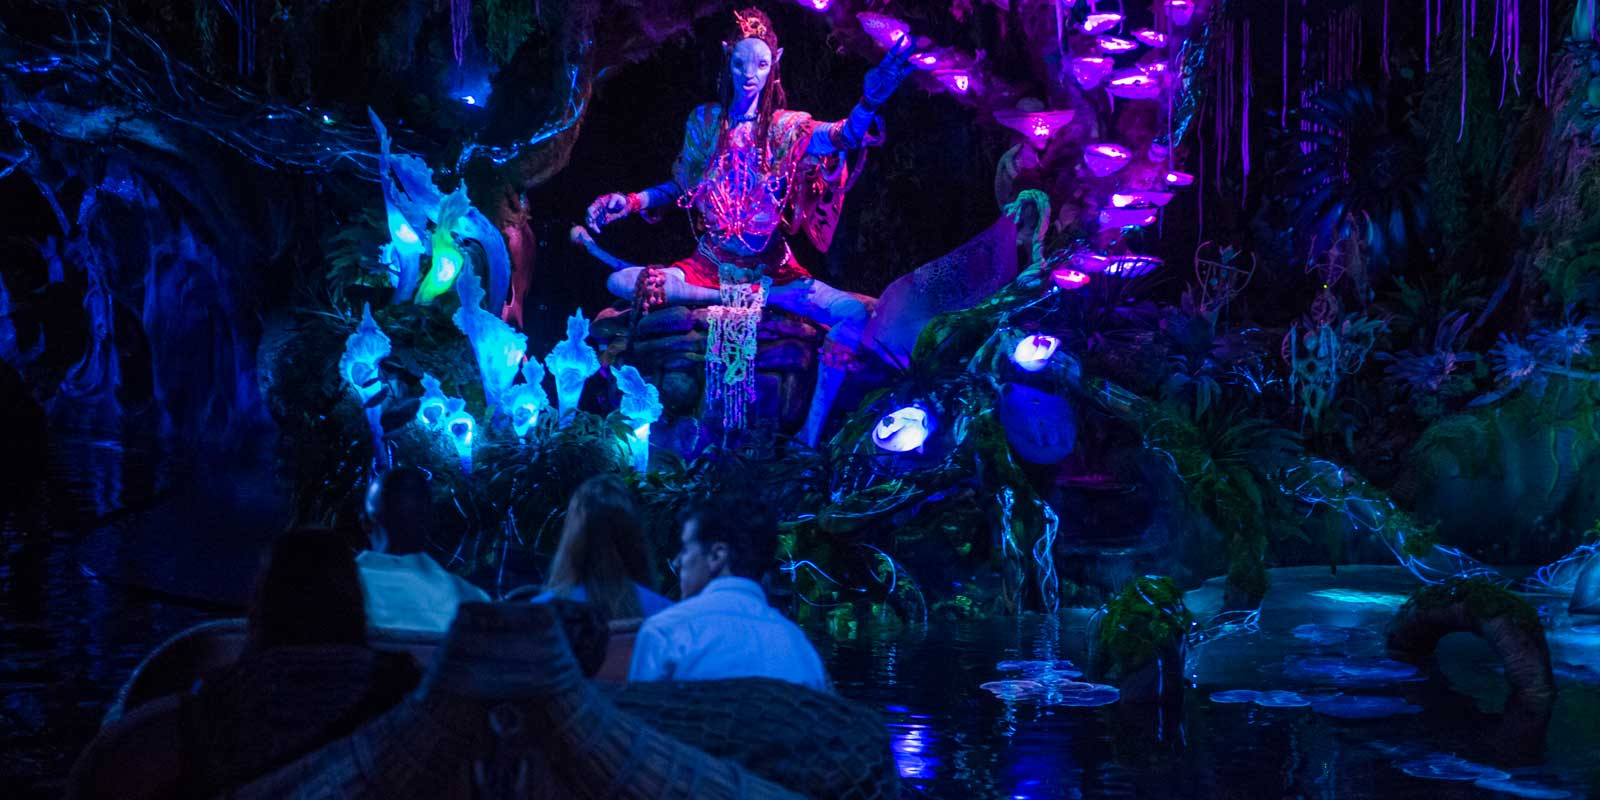 Fastpass for Na'vi River Journey or Flights of Passage is a MUST. These new rides have crazy long rides! Check out my other tips on Fastpasses for adults.